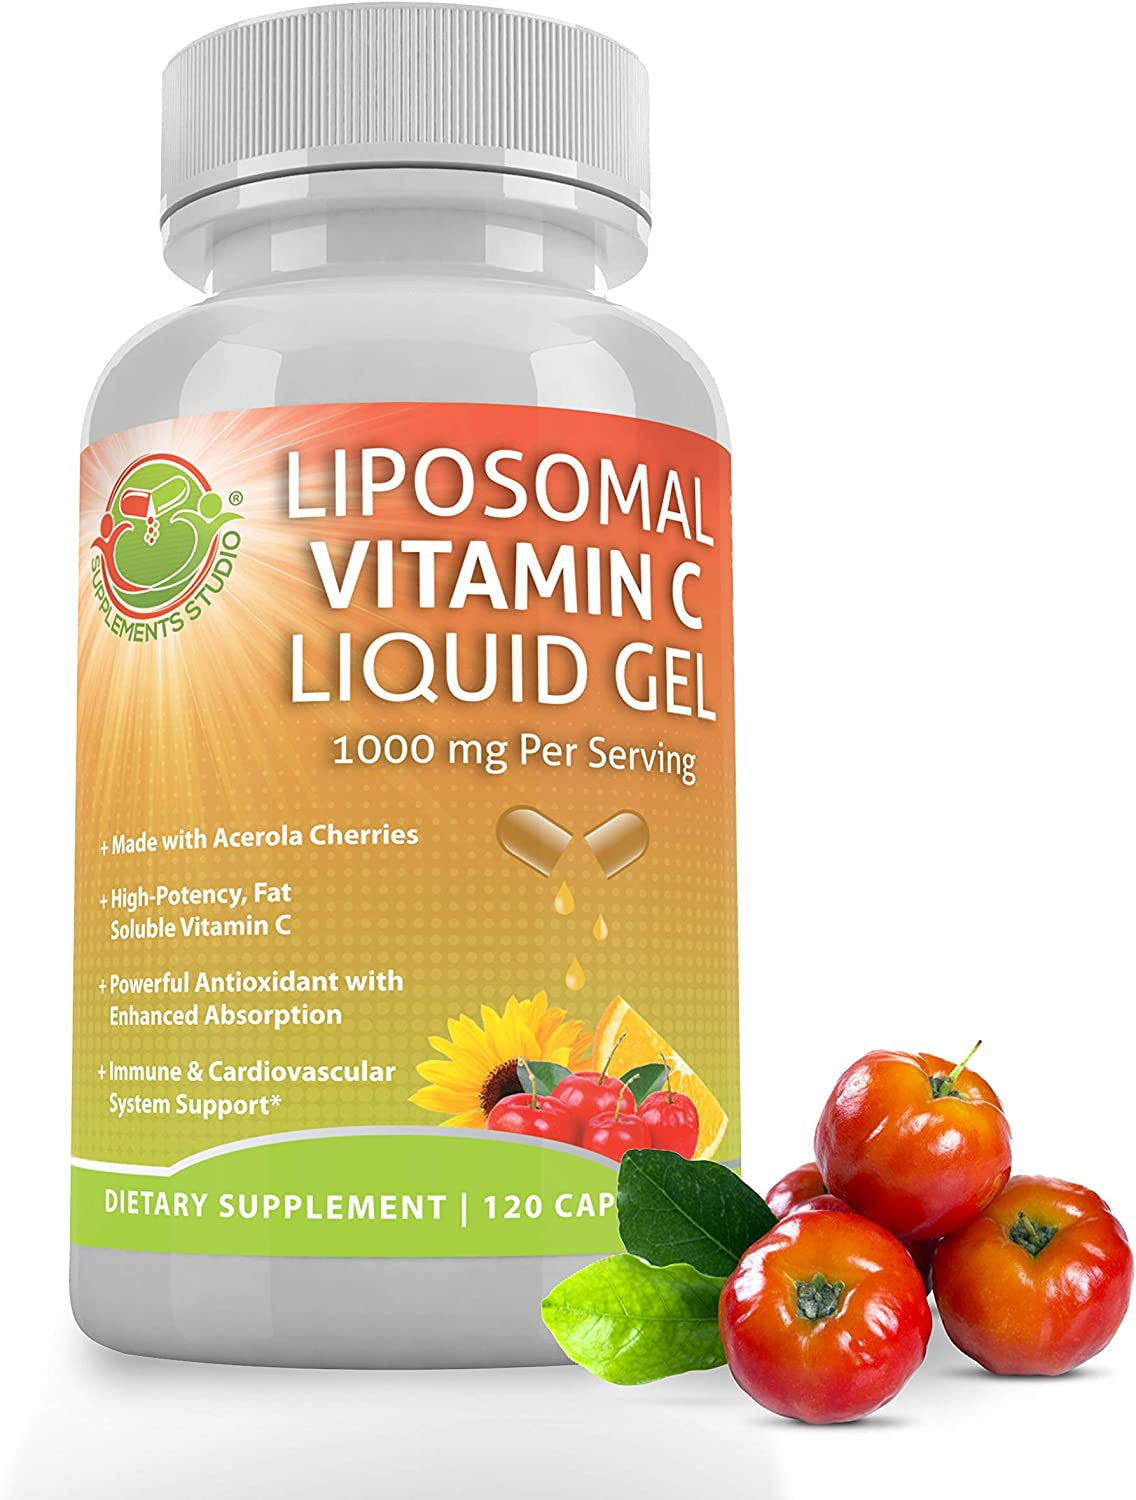 LIPOSOMAL Vitamin C Liquid Gel Organic Acerola Cherries & Sunflower Lecithin, Enhanced Absorption & Bioavailability, High Potency 1000 mg, 2 Month Supply, 120 DRcaps, Gluten Free, Non-GMO, China-Free